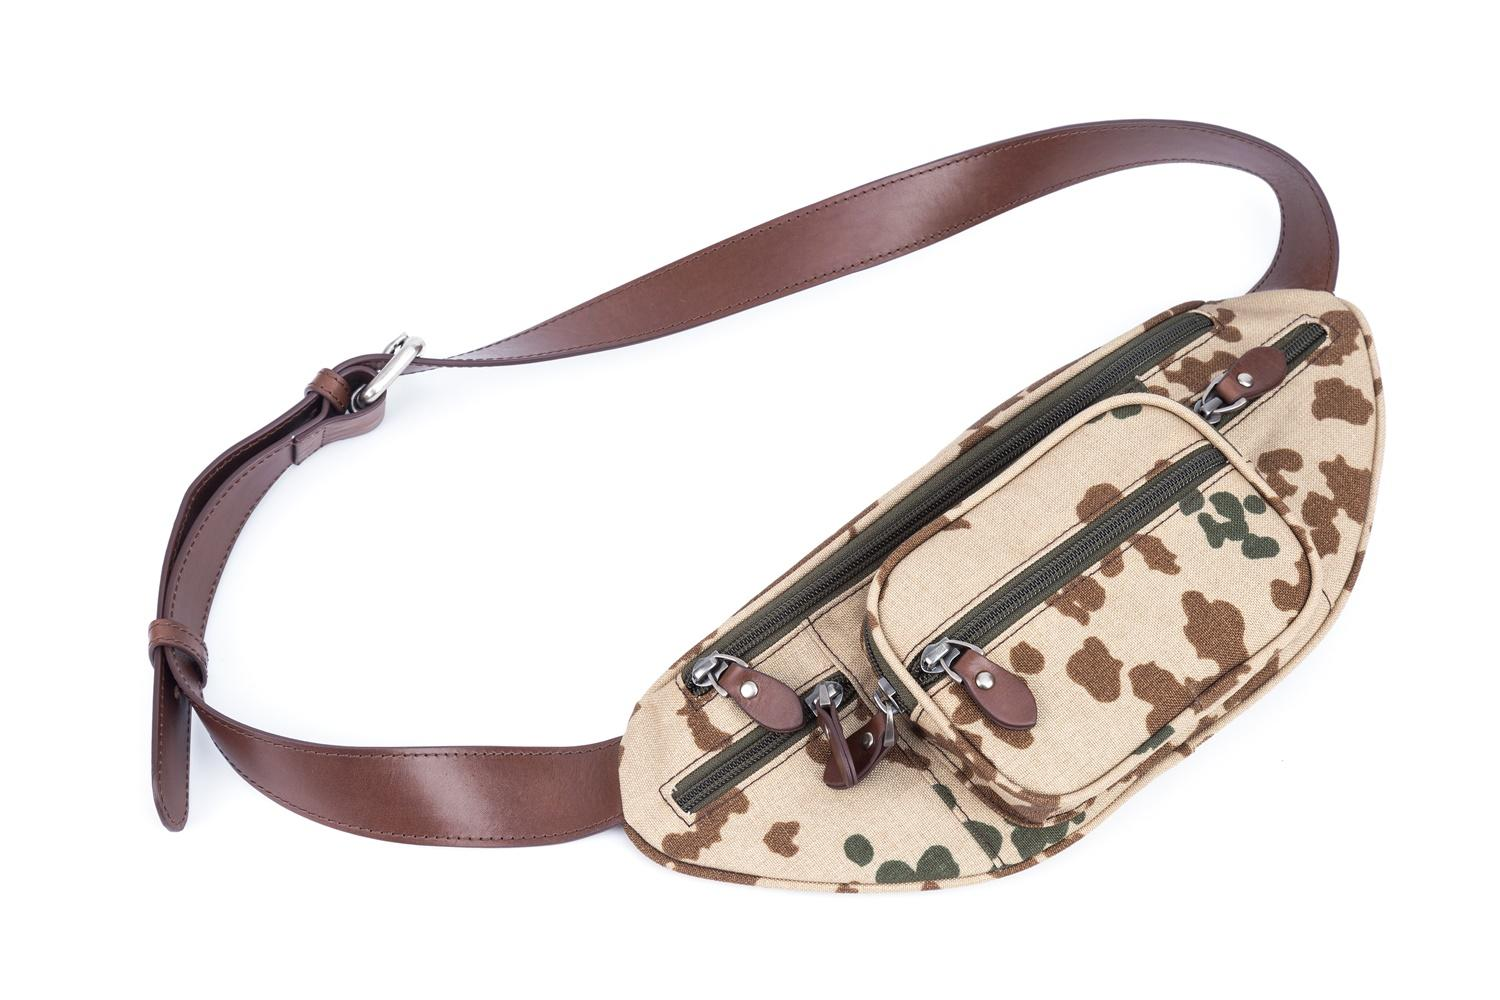 genuine leather wax leather strap camouflage nylon pocket